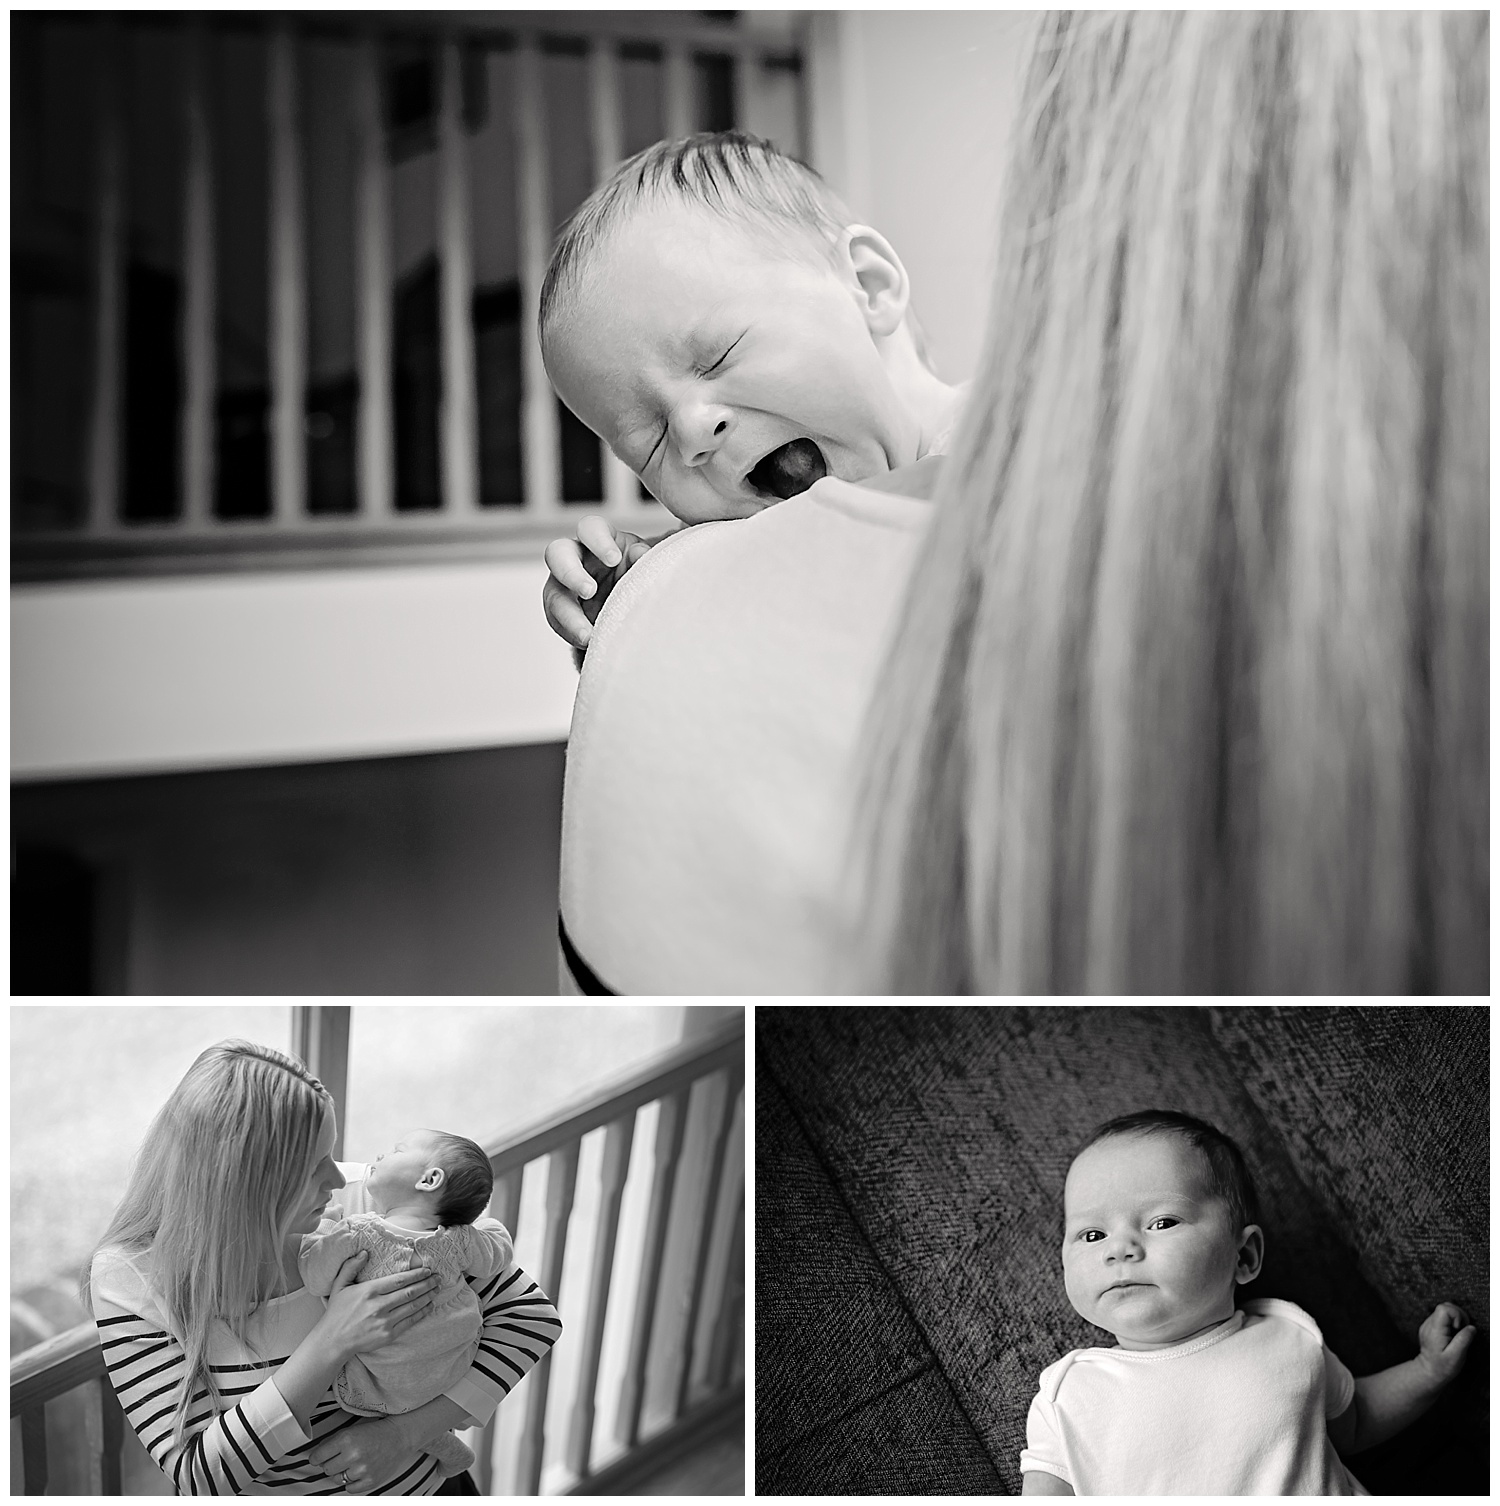 montage of black and white photos taken during a new born baby photo shoot with Alexandra Tandy Photography in Oxfordshire